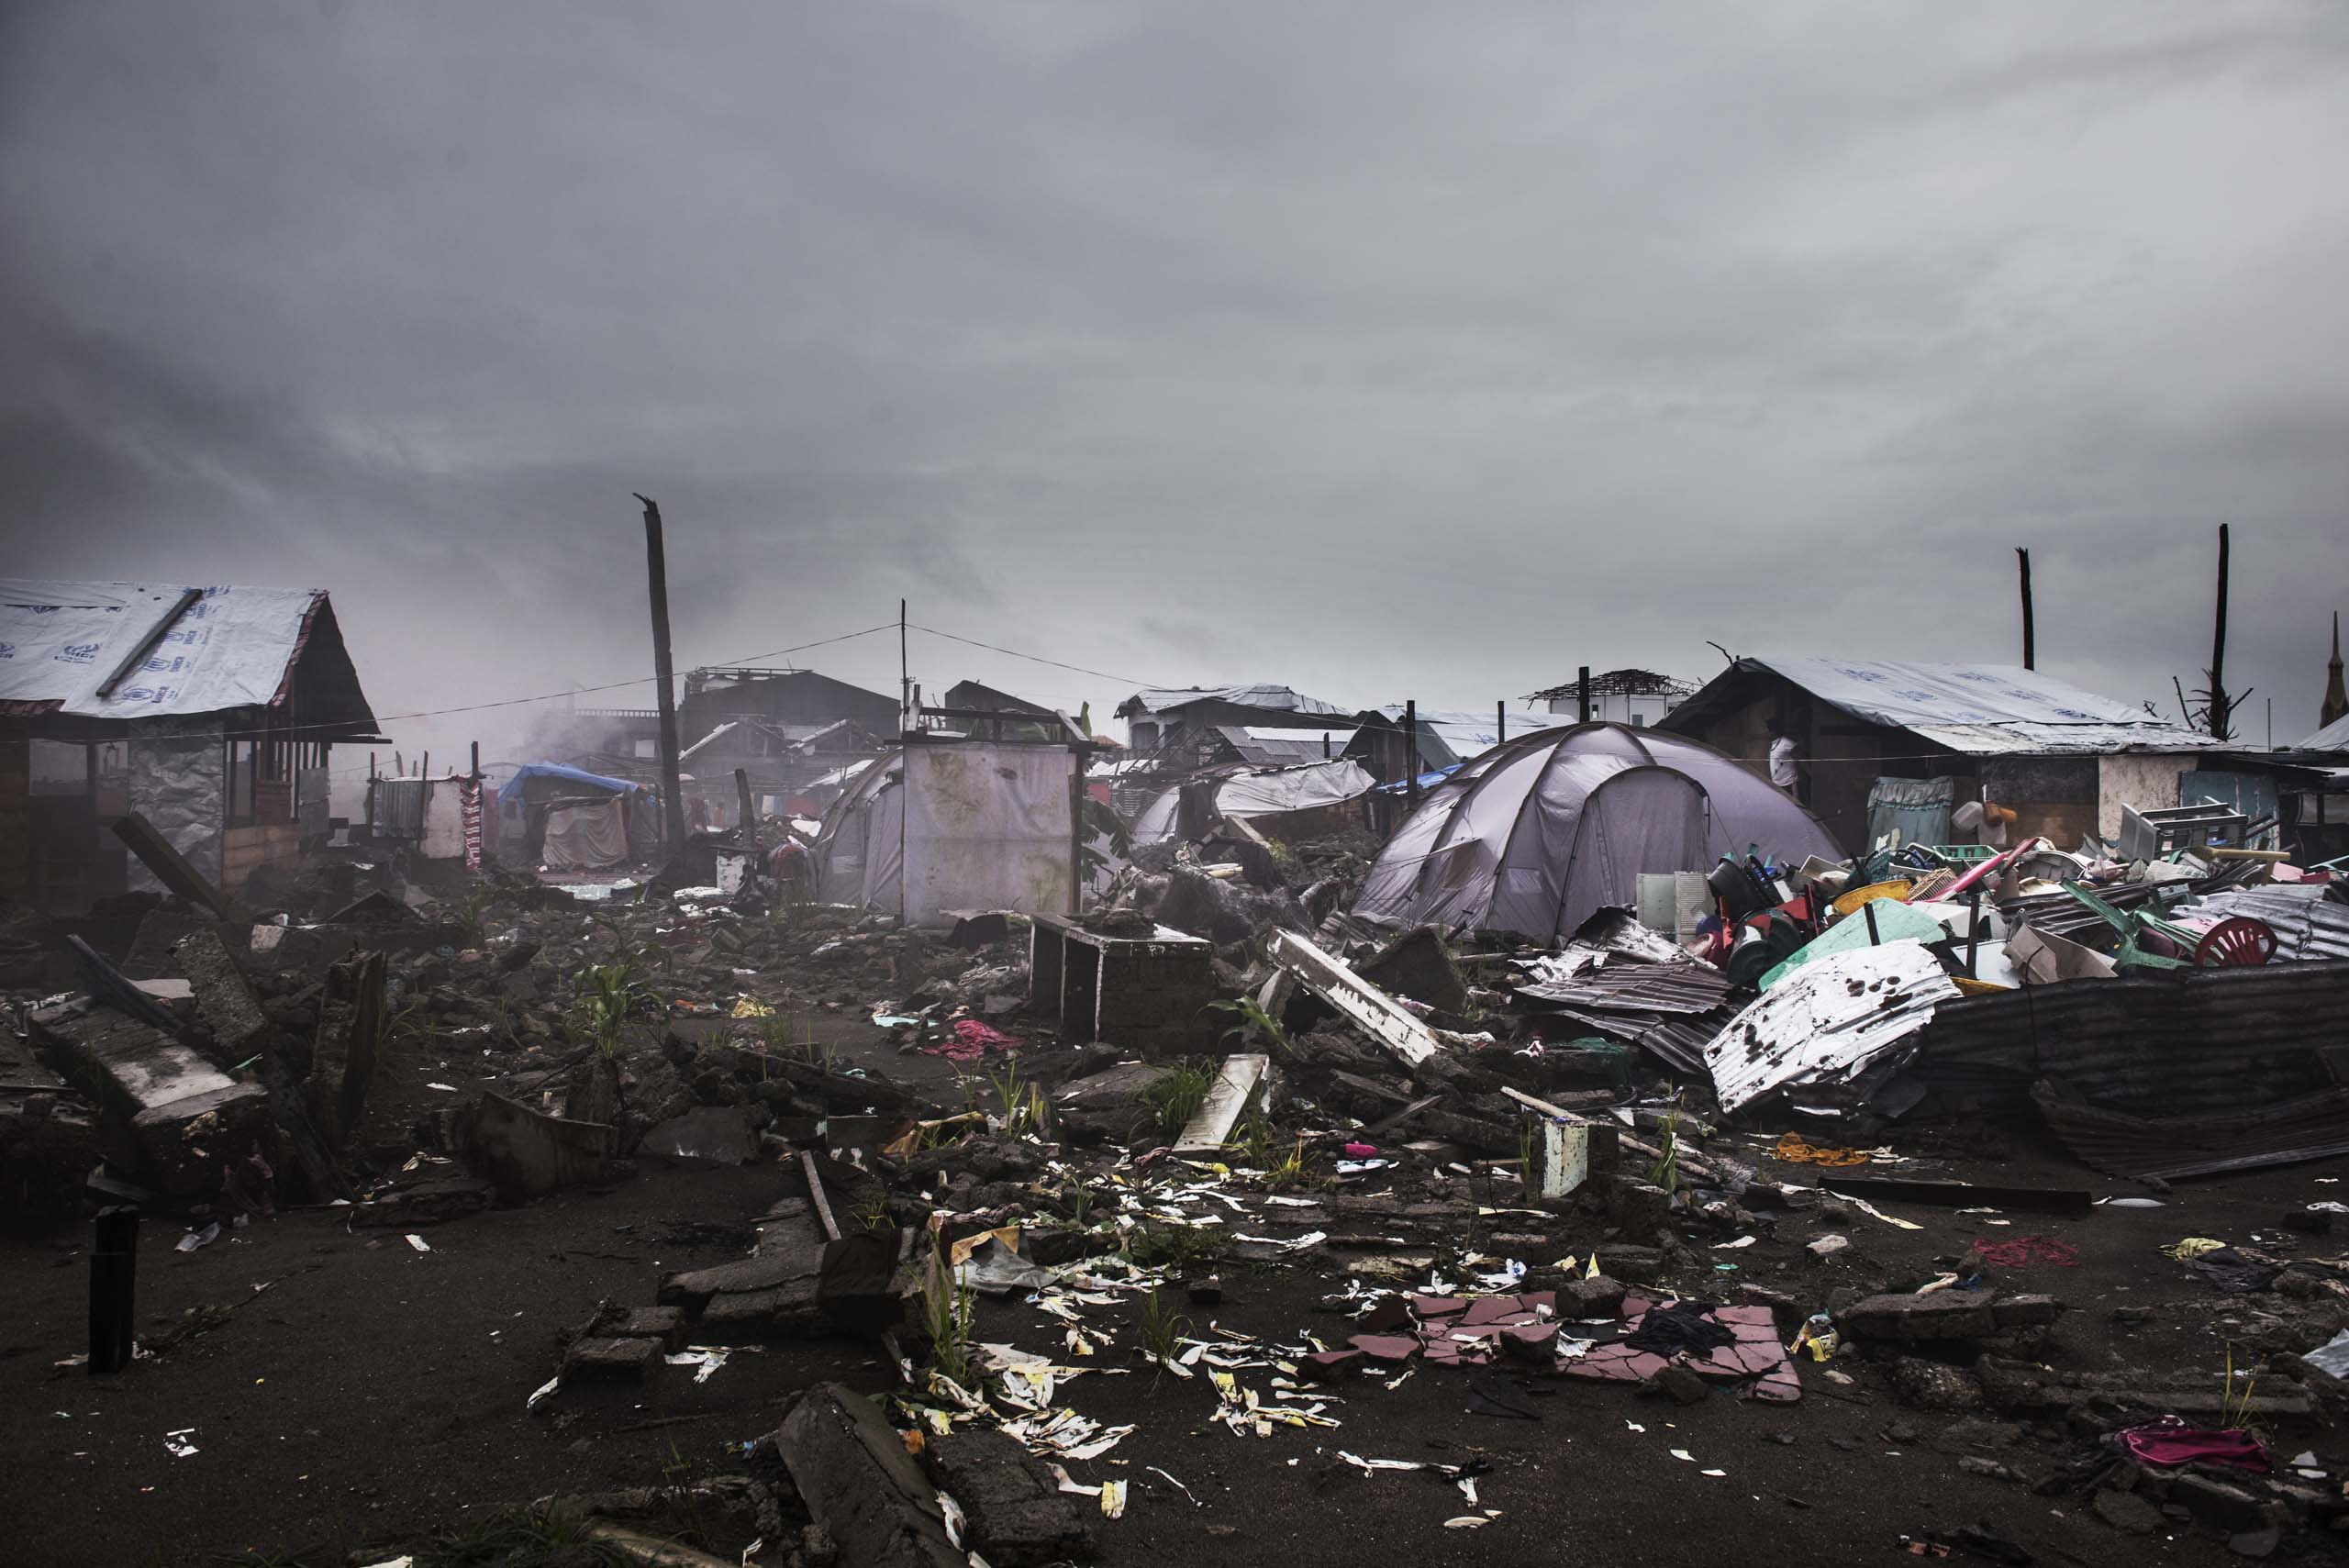 Jan 13, 2014: Damaged houses in Palo outside of Tacoloban. Typhoon Haiyan hit the Philippines on November 8, 2013, and killed some six thousand people, and affected some 14.1 million others, destroying their homes, livelihoods, and displacing families.  There is an estimated 230,000 pregnant women in the affected area, with much of the medical infrastructure destroyed